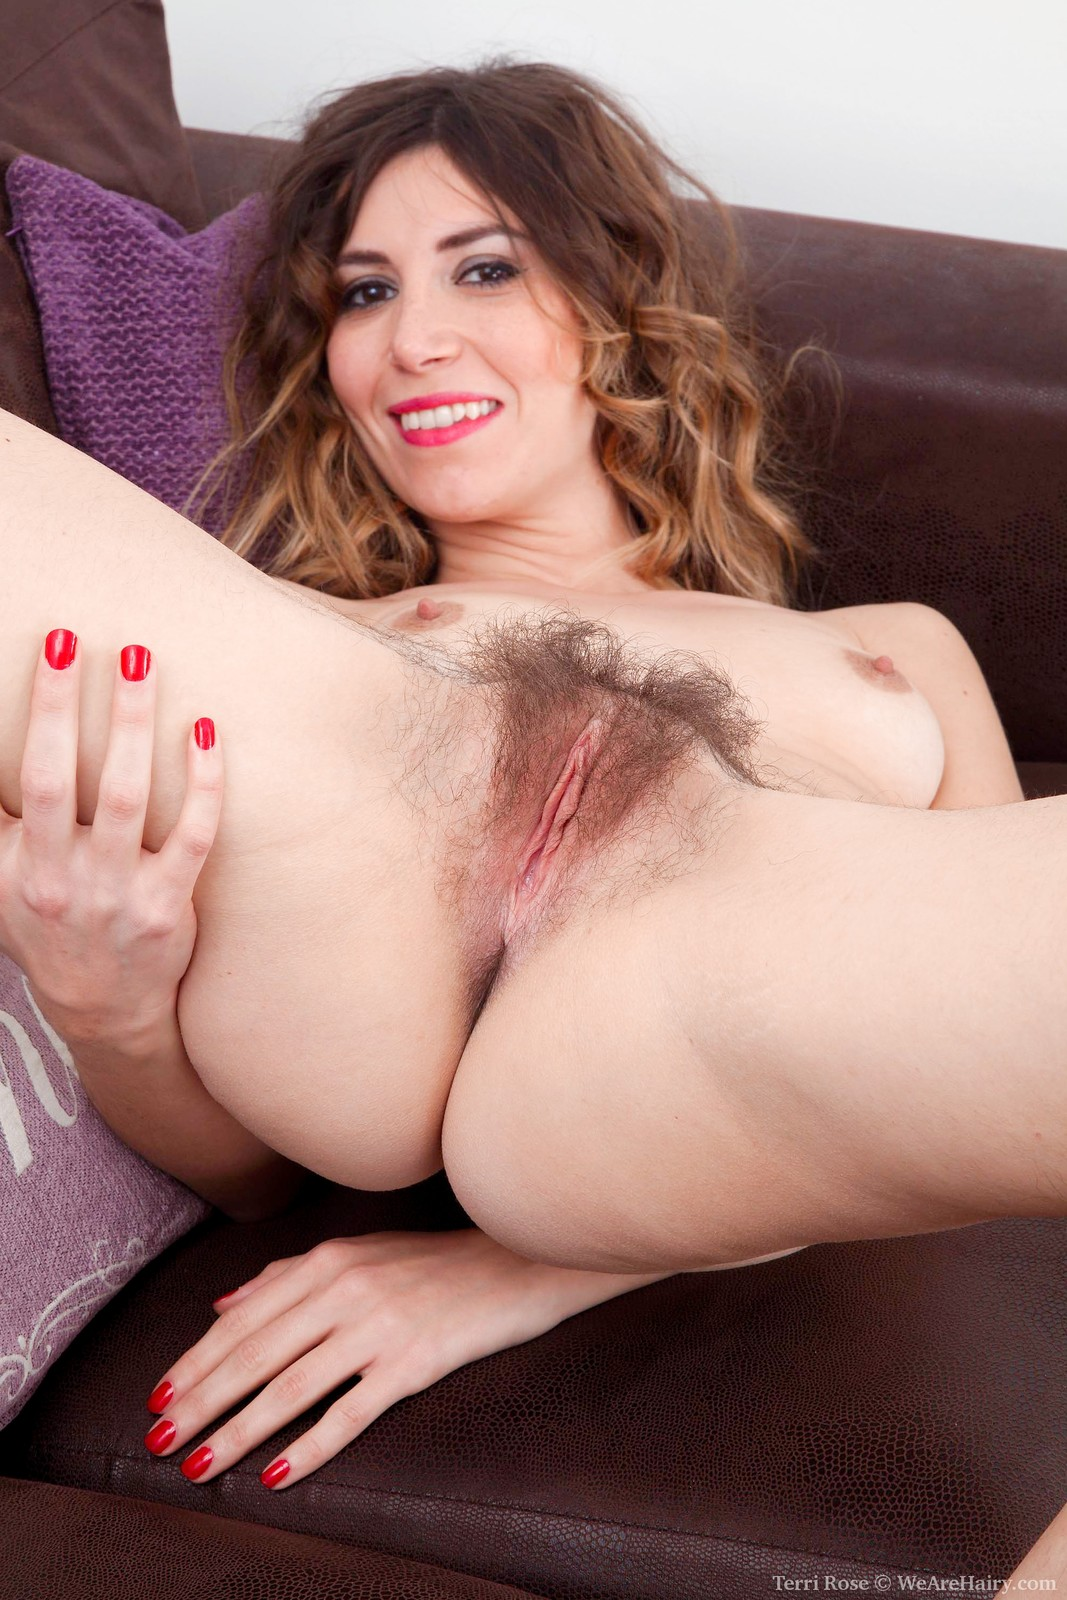 terri-rose-is-in-her-white-dress-on-her-purple-sofa-and-showing-off-her-very-hairy-pits.-she-strips-naked-and-shows-us-her-hairy-pussy-too.-she-bends-over-spreads-wide-and-shows-all-of-it-off-for-us.12.jpg